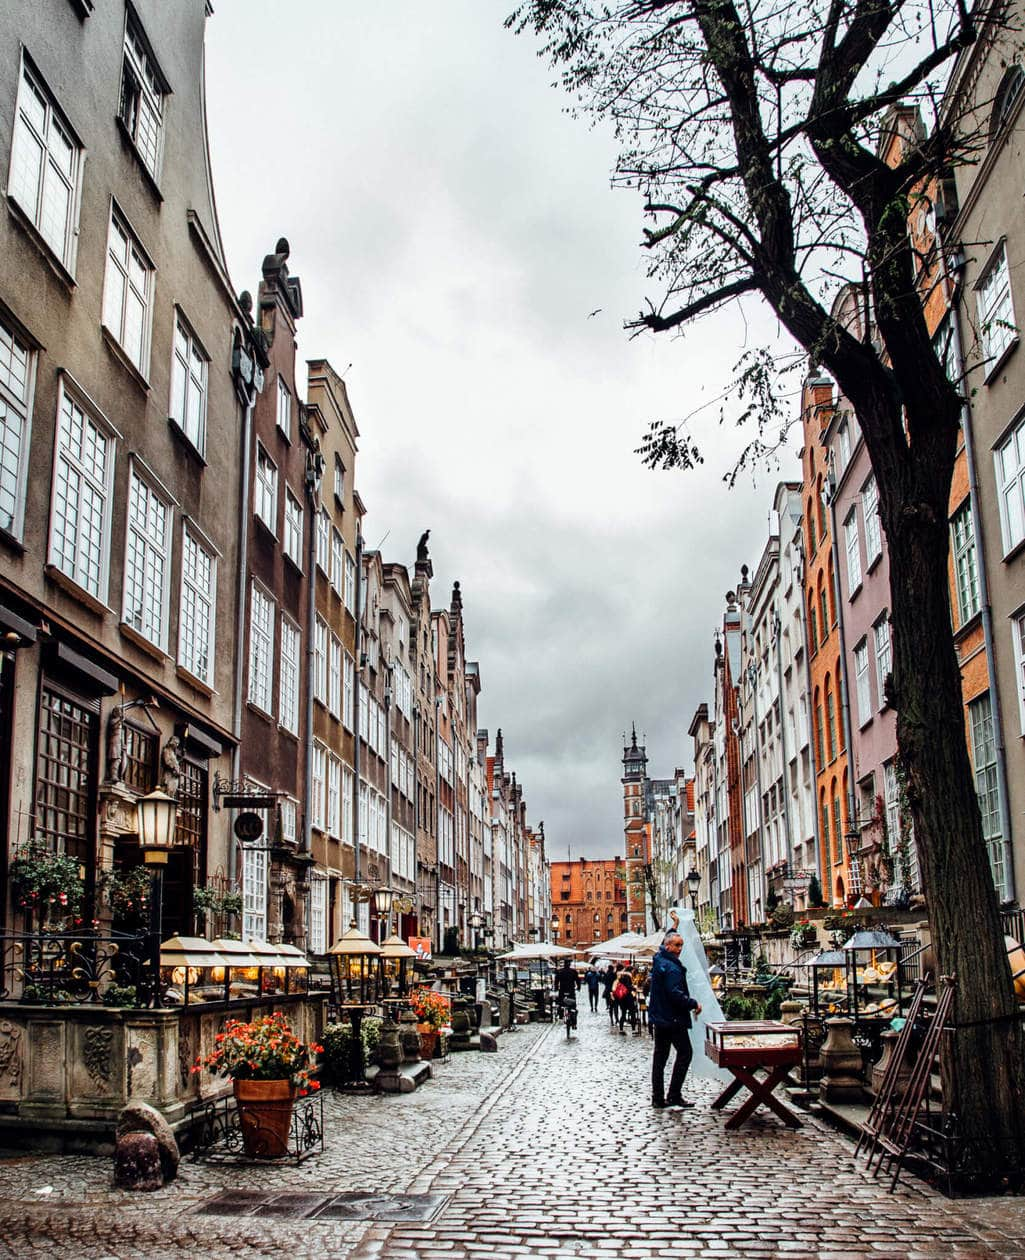 Mariacka Street // Everything you need to know to spend a weekend in Old Town Gdansk. Discover what to do, where to stay, which bars to visit, plus tips for visiting and tons of Gdansk photography to inspire your trip. Click to discover Poland's Pearl of the North.